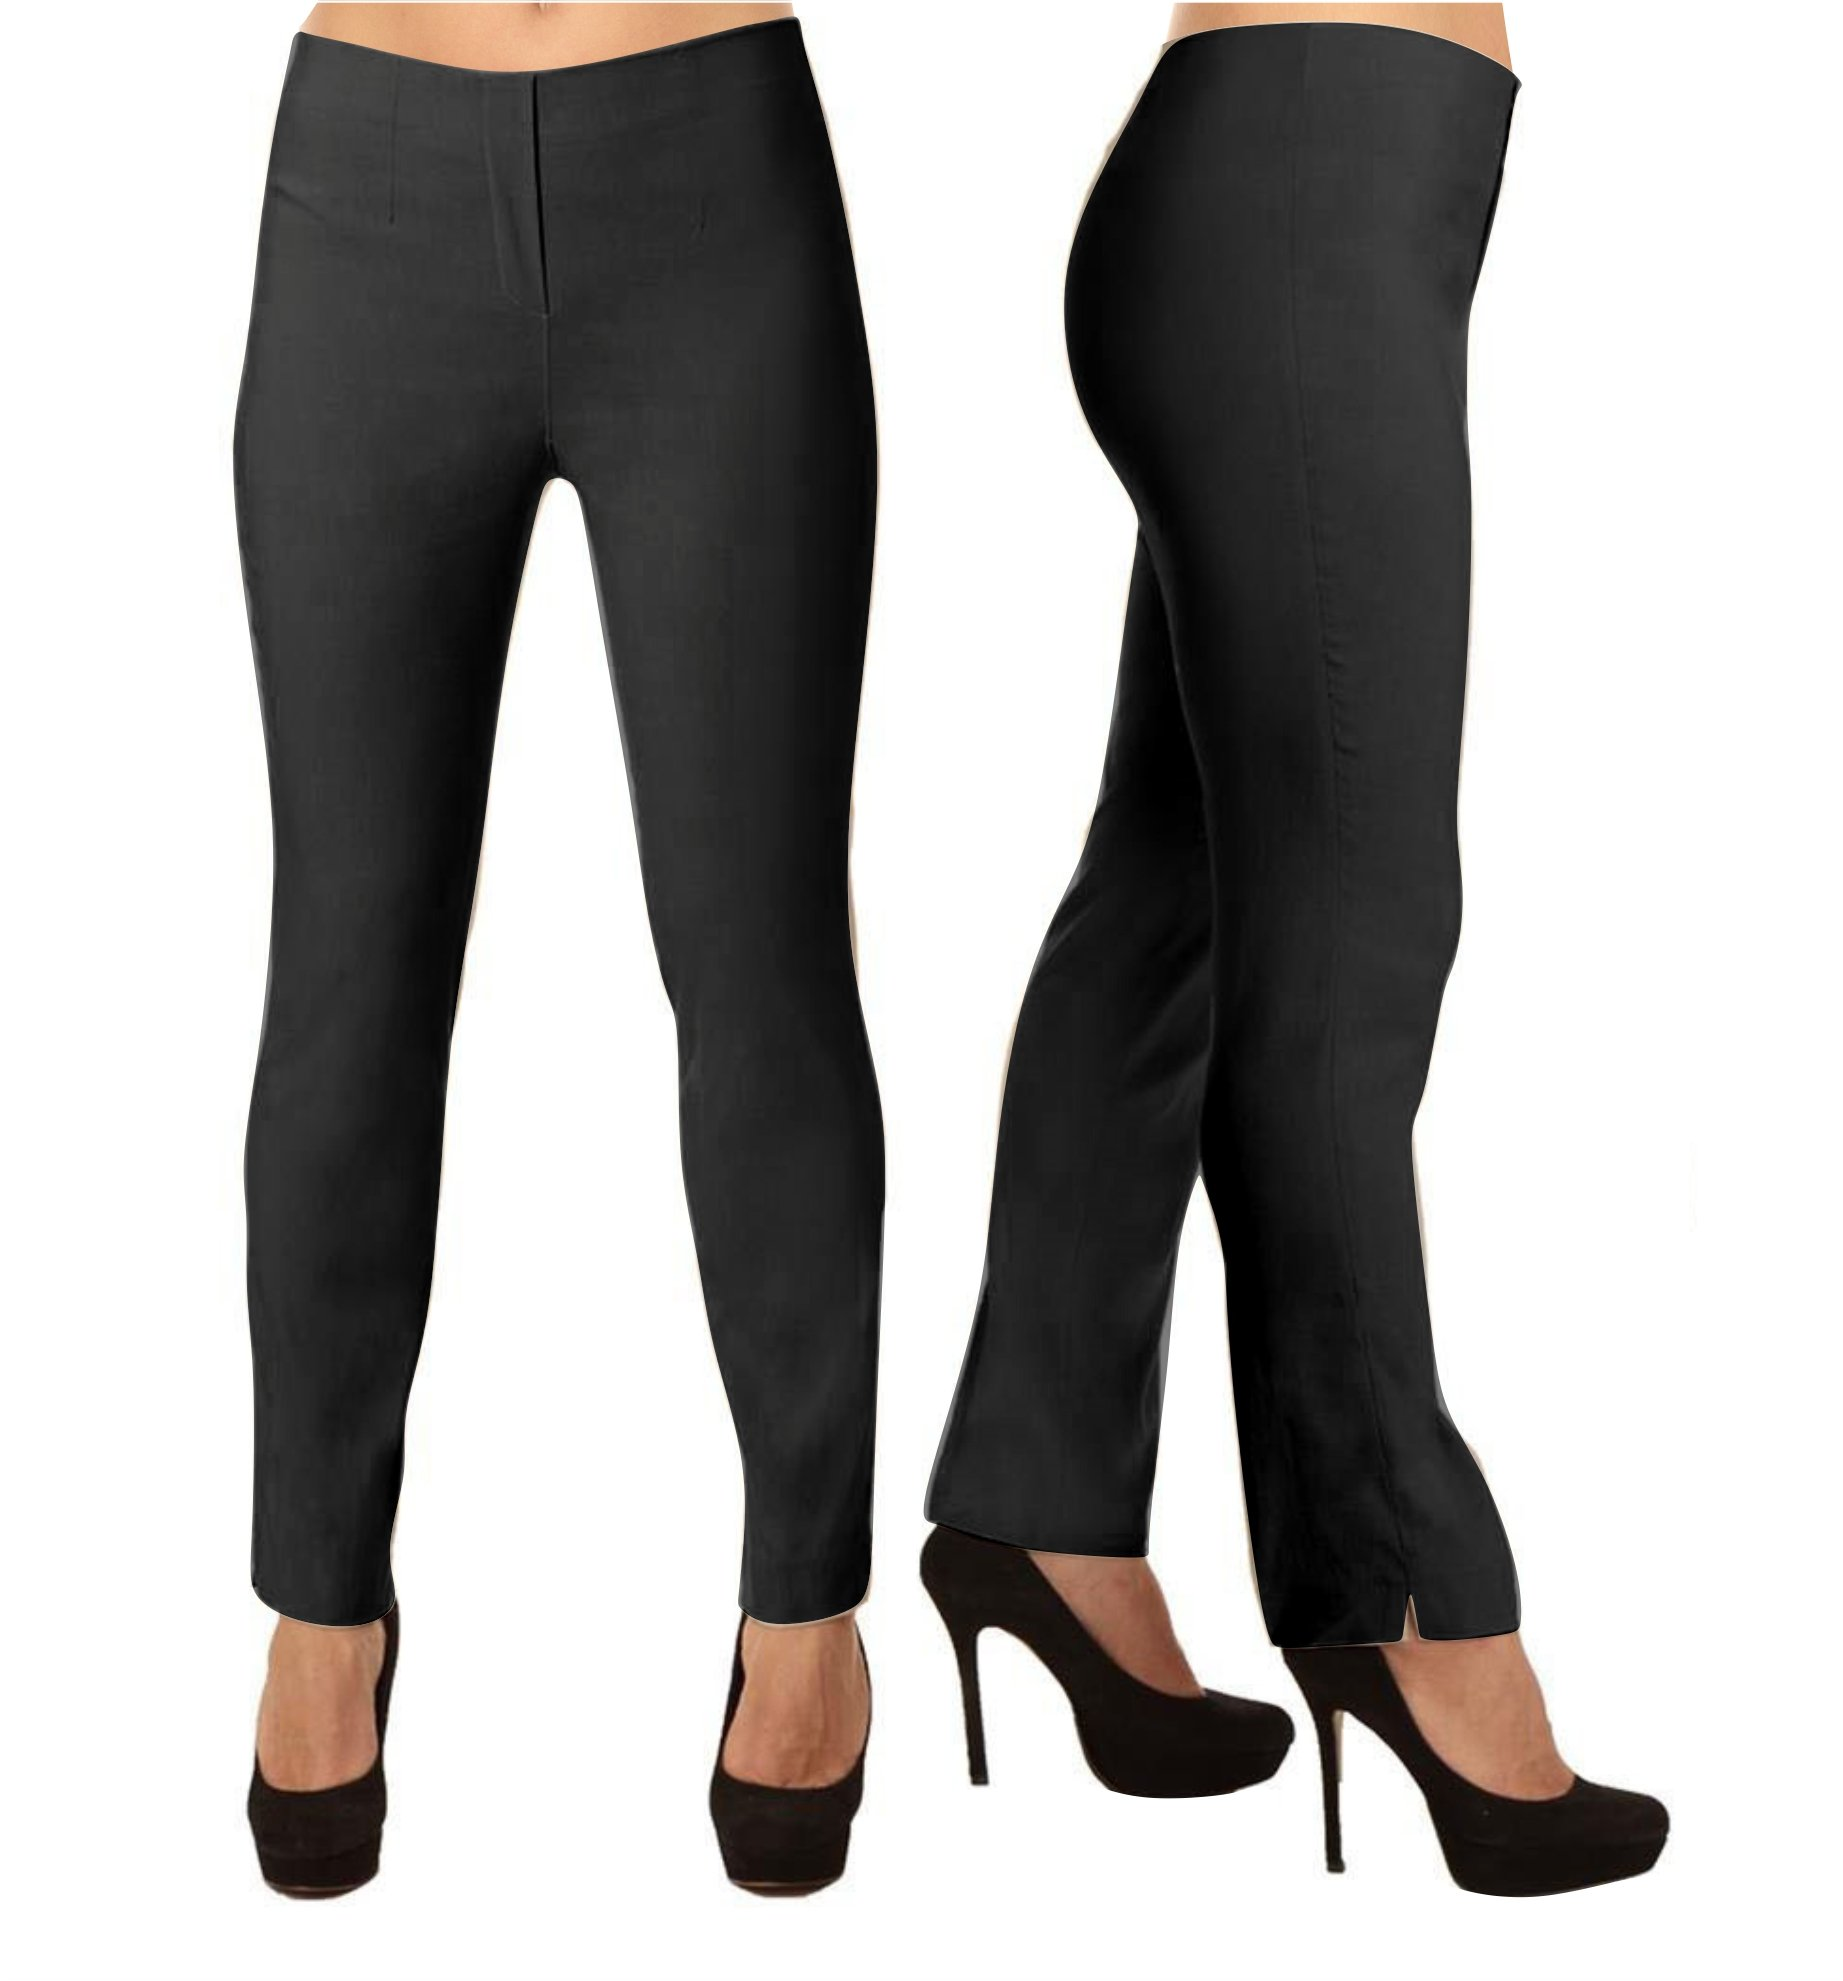 Lior Paris LIZE a Classic Fit Straight Pant For EveryBody. (4, Black) by Lior paris